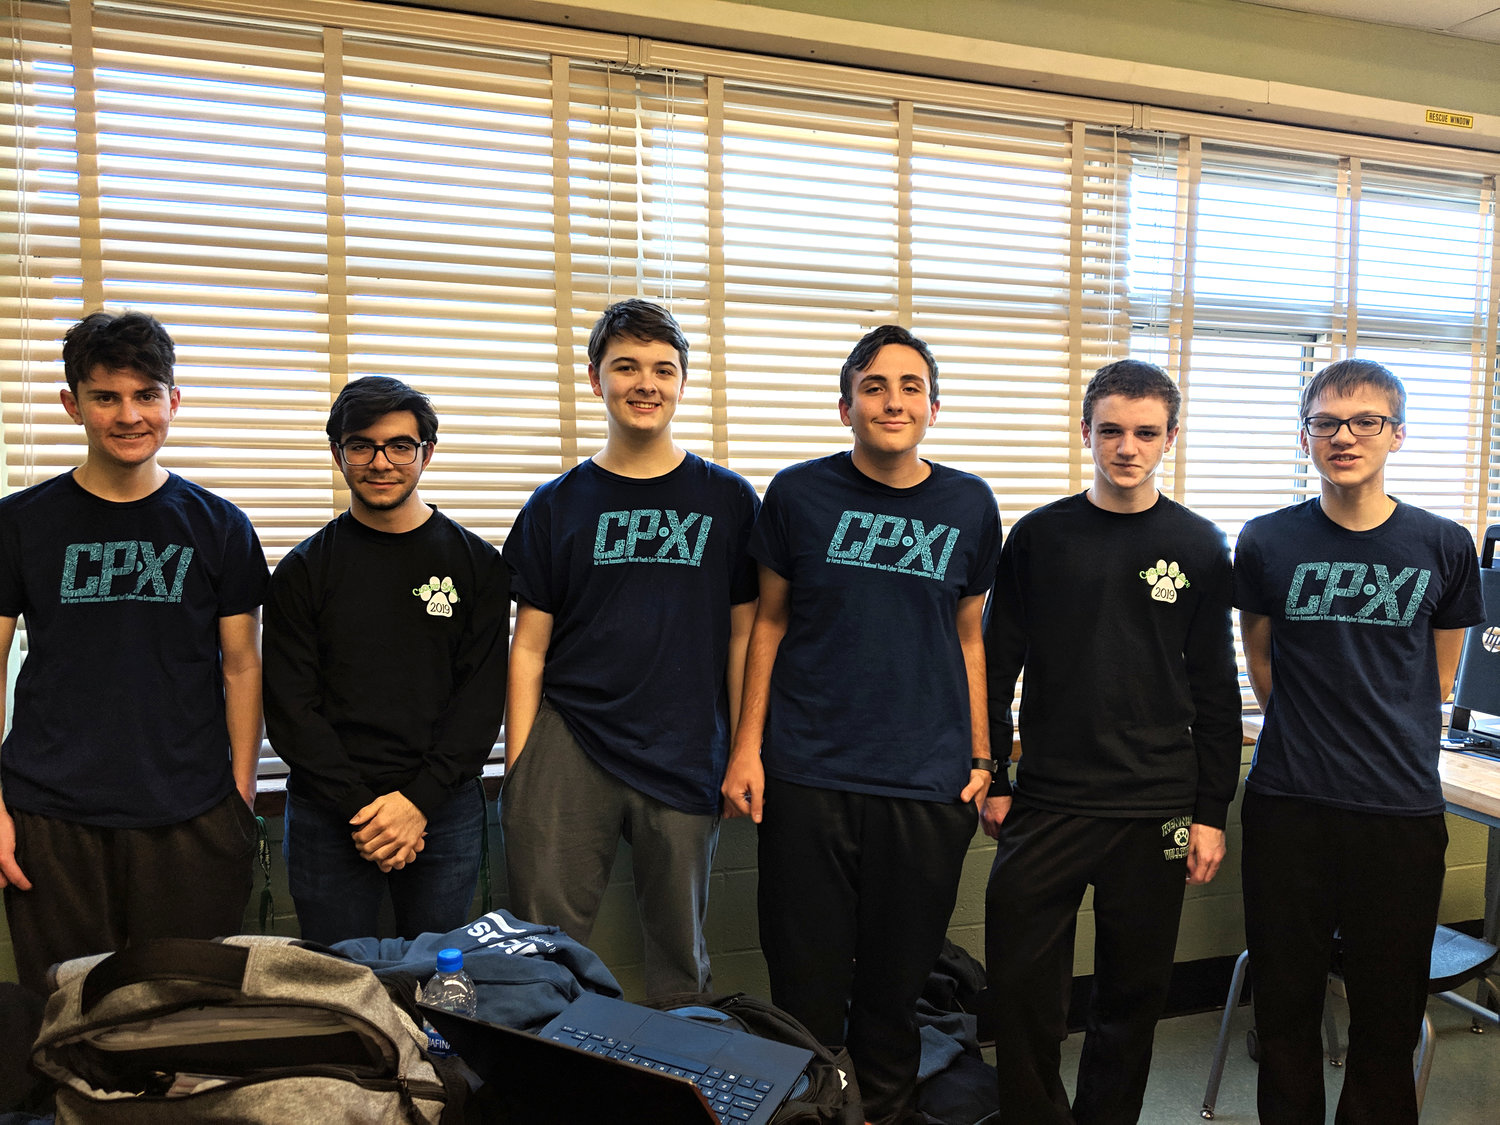 The CyberPatriot team, from left: Tyler Kealy, Jack Racer, Aiden Walden, Jared Weinstein, Johnathon Ivers and Chris Pranito.